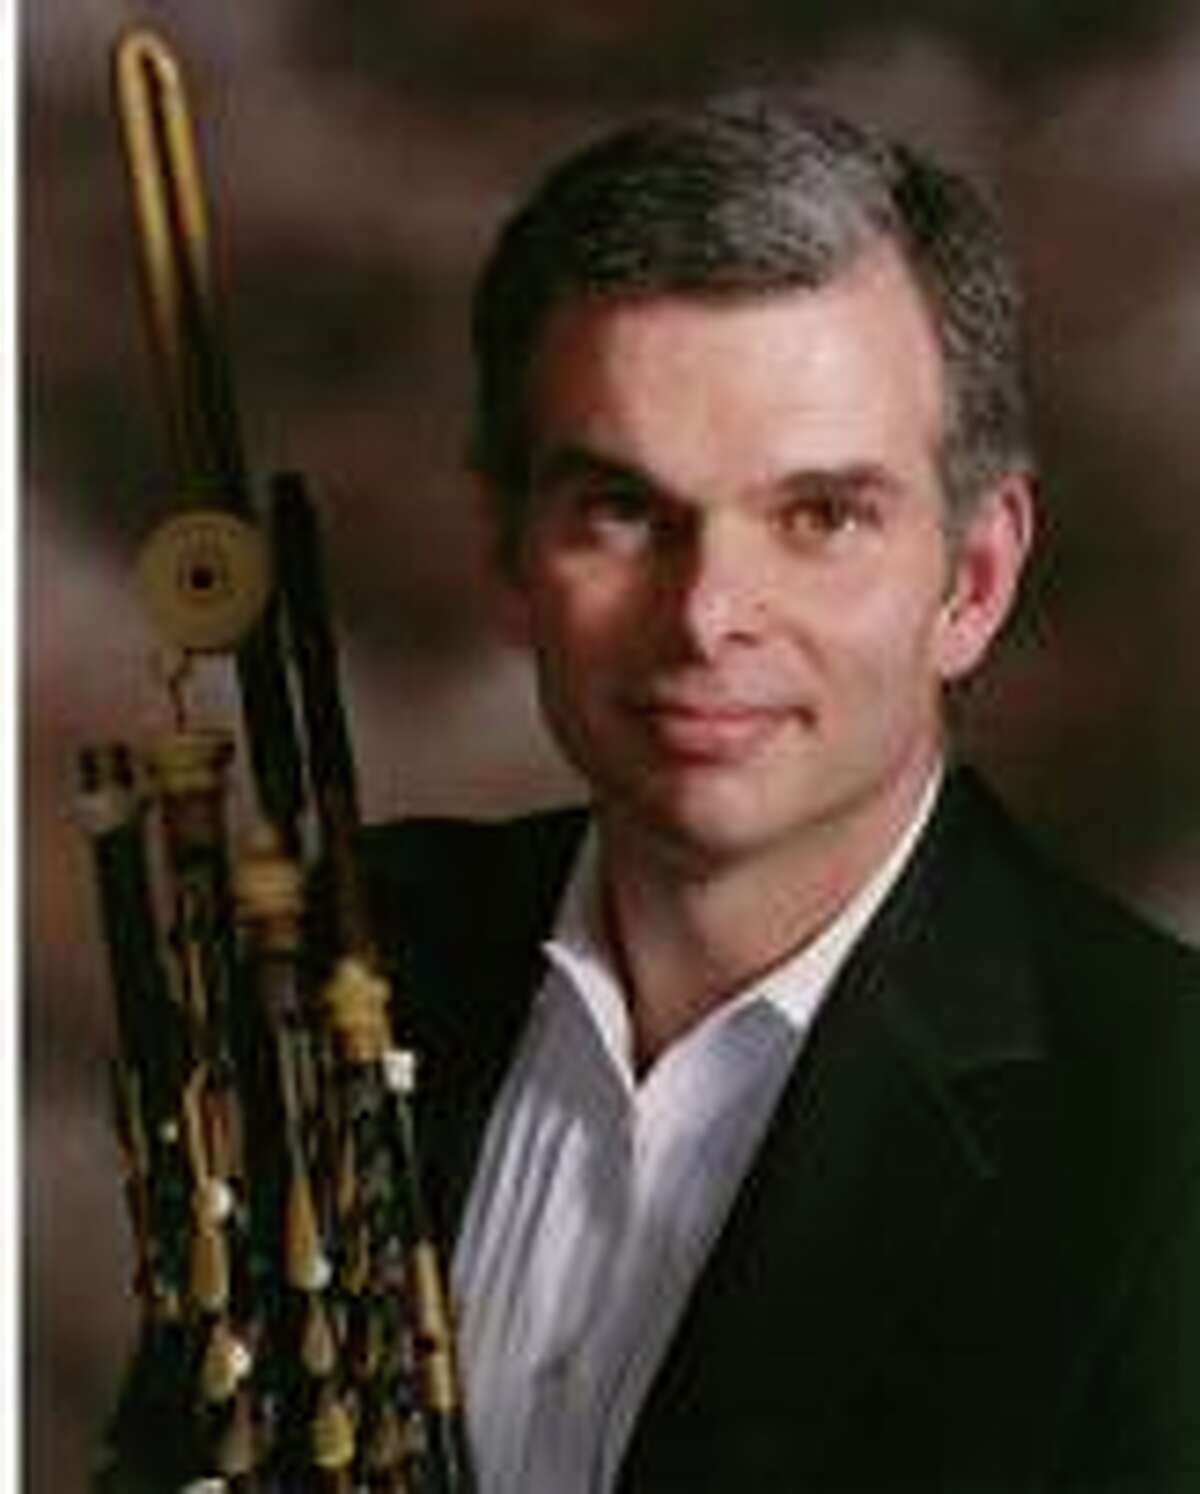 The Greater Bridgeport Symphony is hosting one of America's top Uilleann (elbow) pipers, Jerry O'Sullivan, on March 14,at The Klein in Bridgeport.